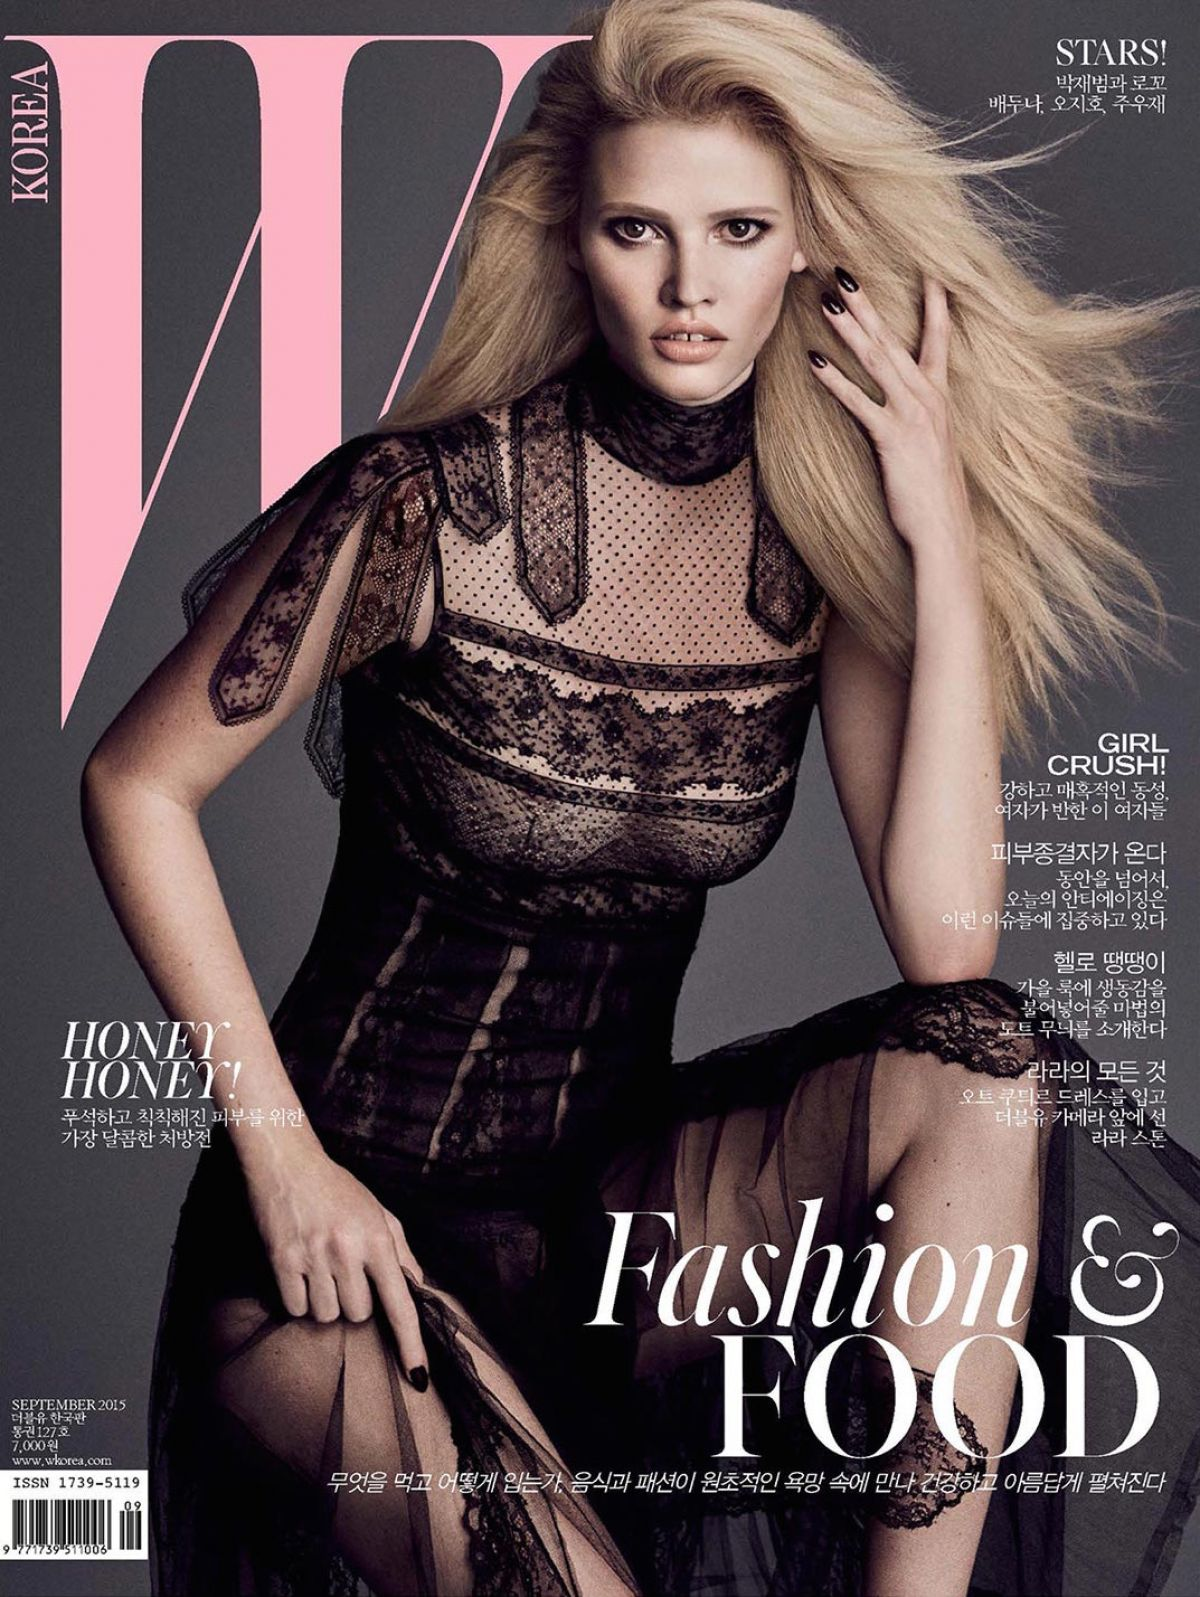 LARA STONE by Iango Henzi and Kuigi Murenu for W Magazine, Korea September 2015 Issue